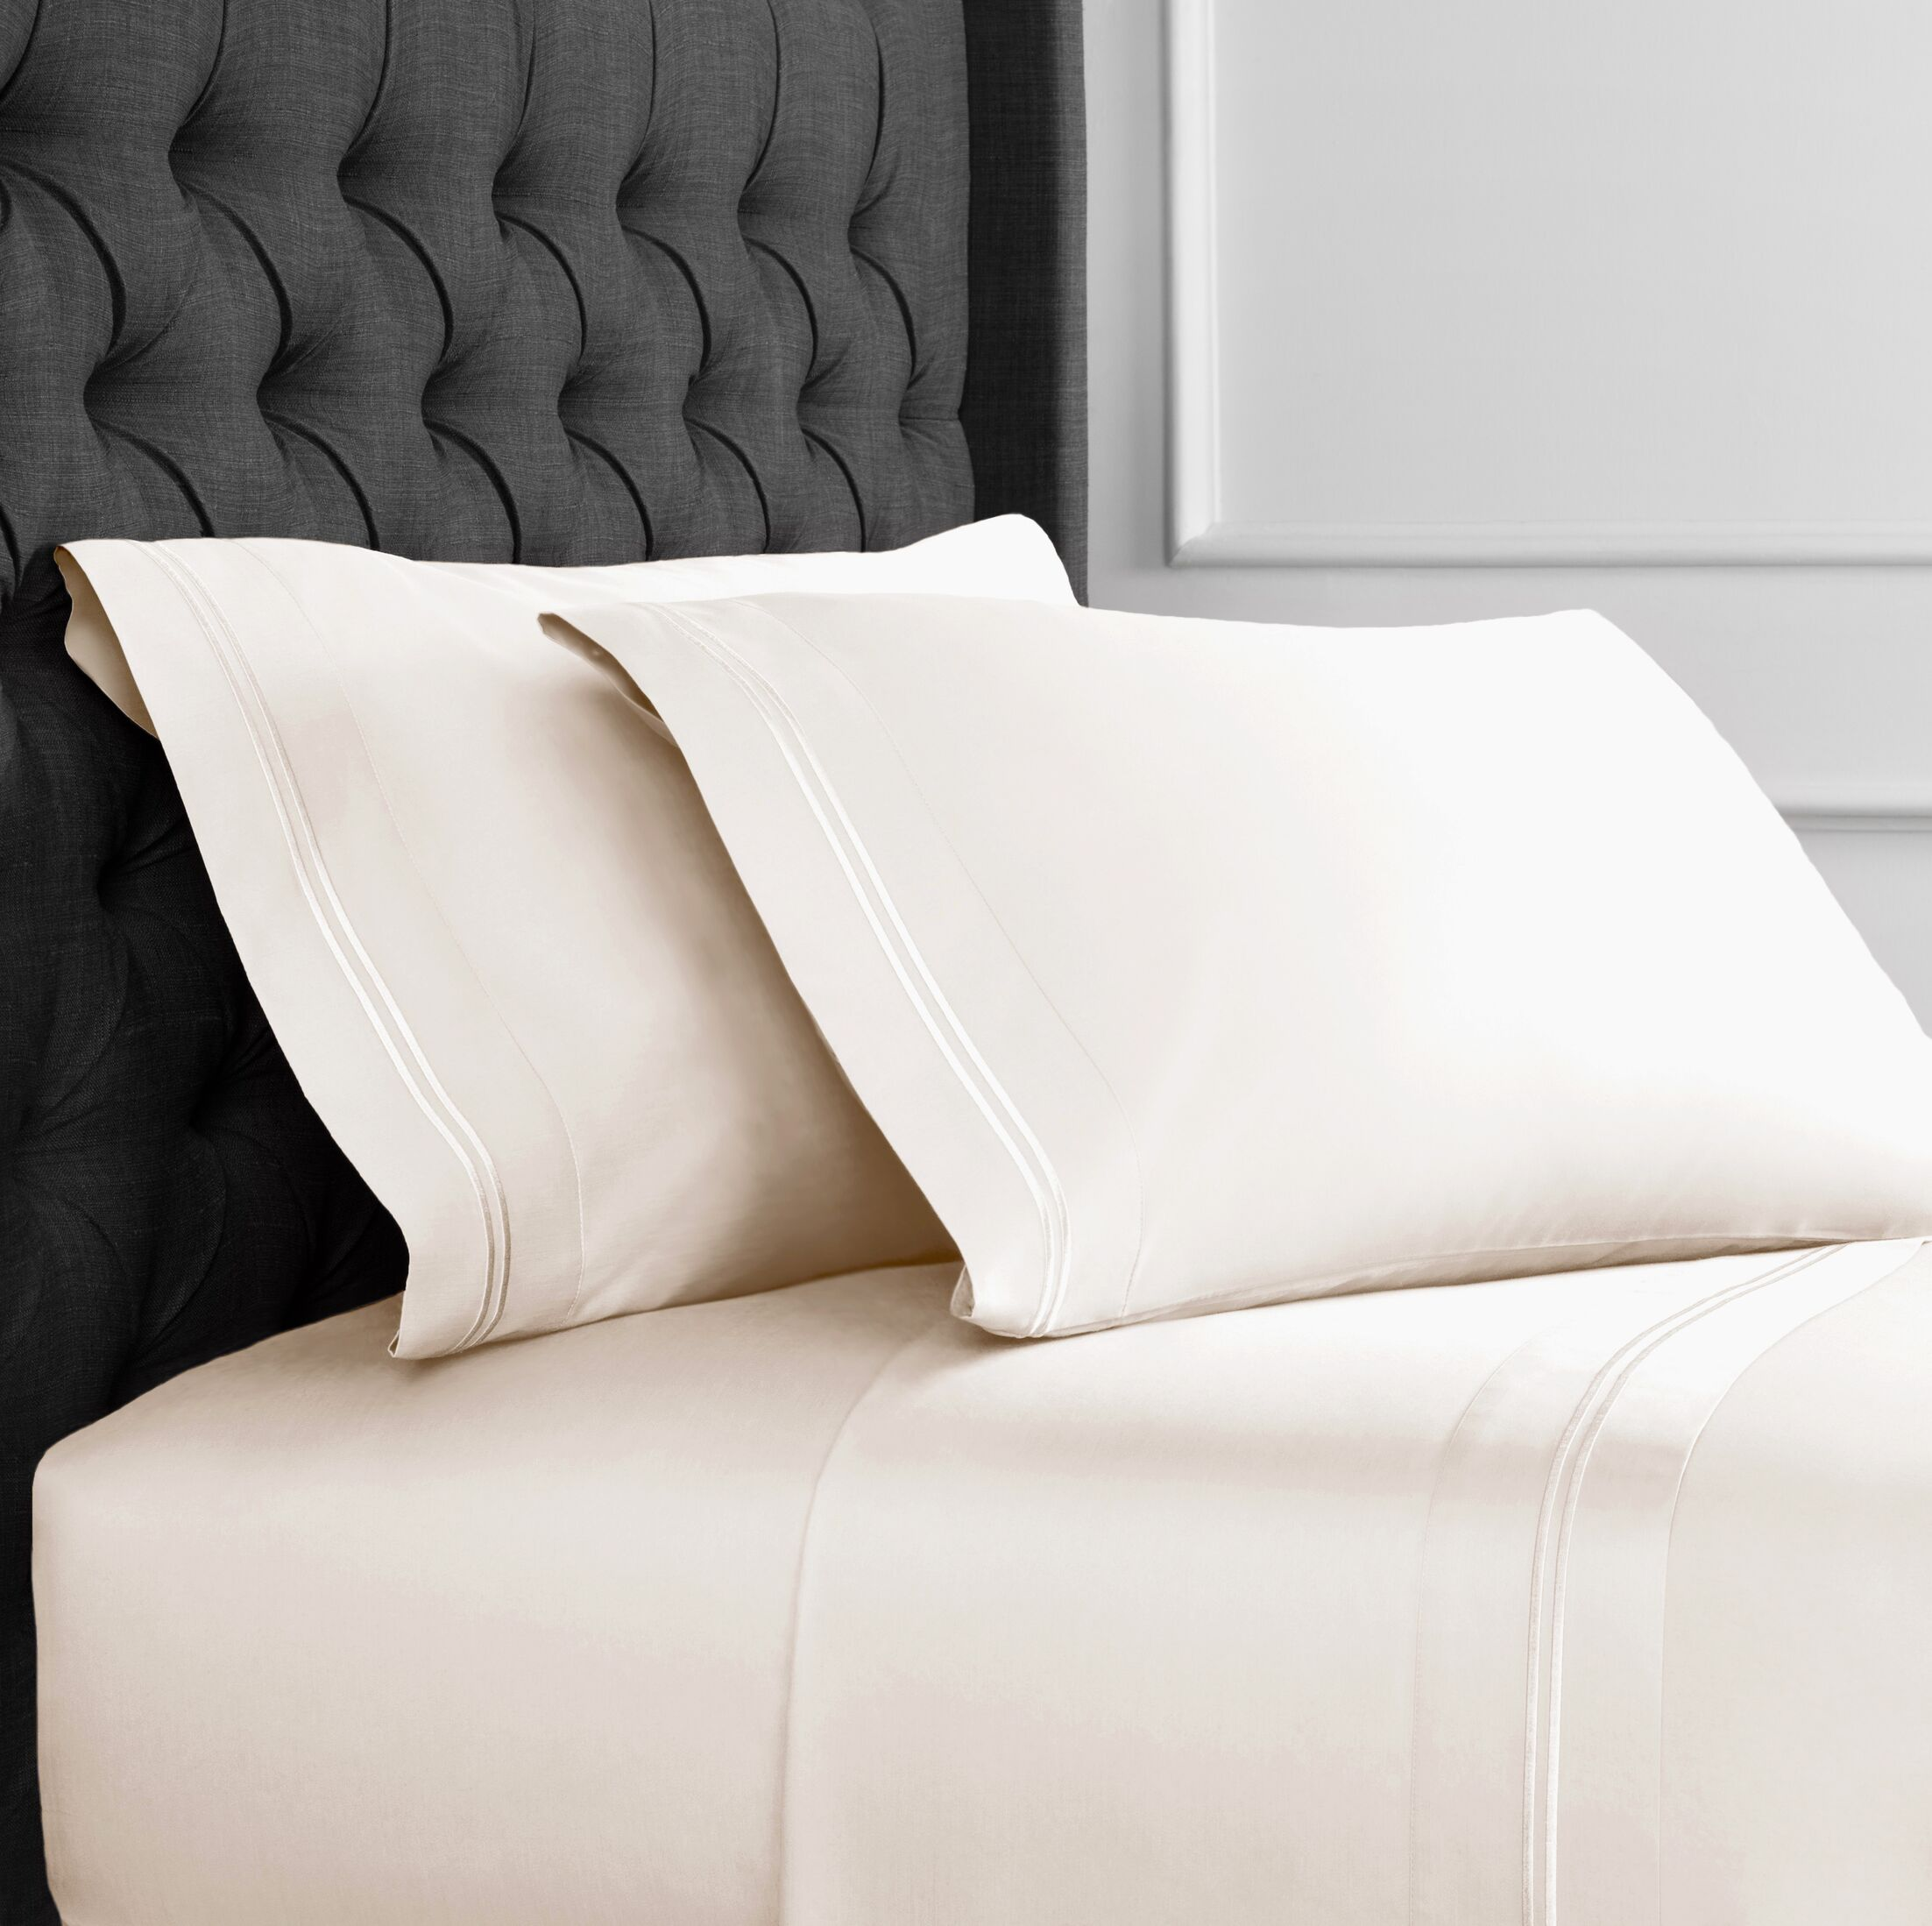 Crose Border Embroidered 600 Thread Count 100% Cotton Sheet Set Size: Twin, Color: Ivory